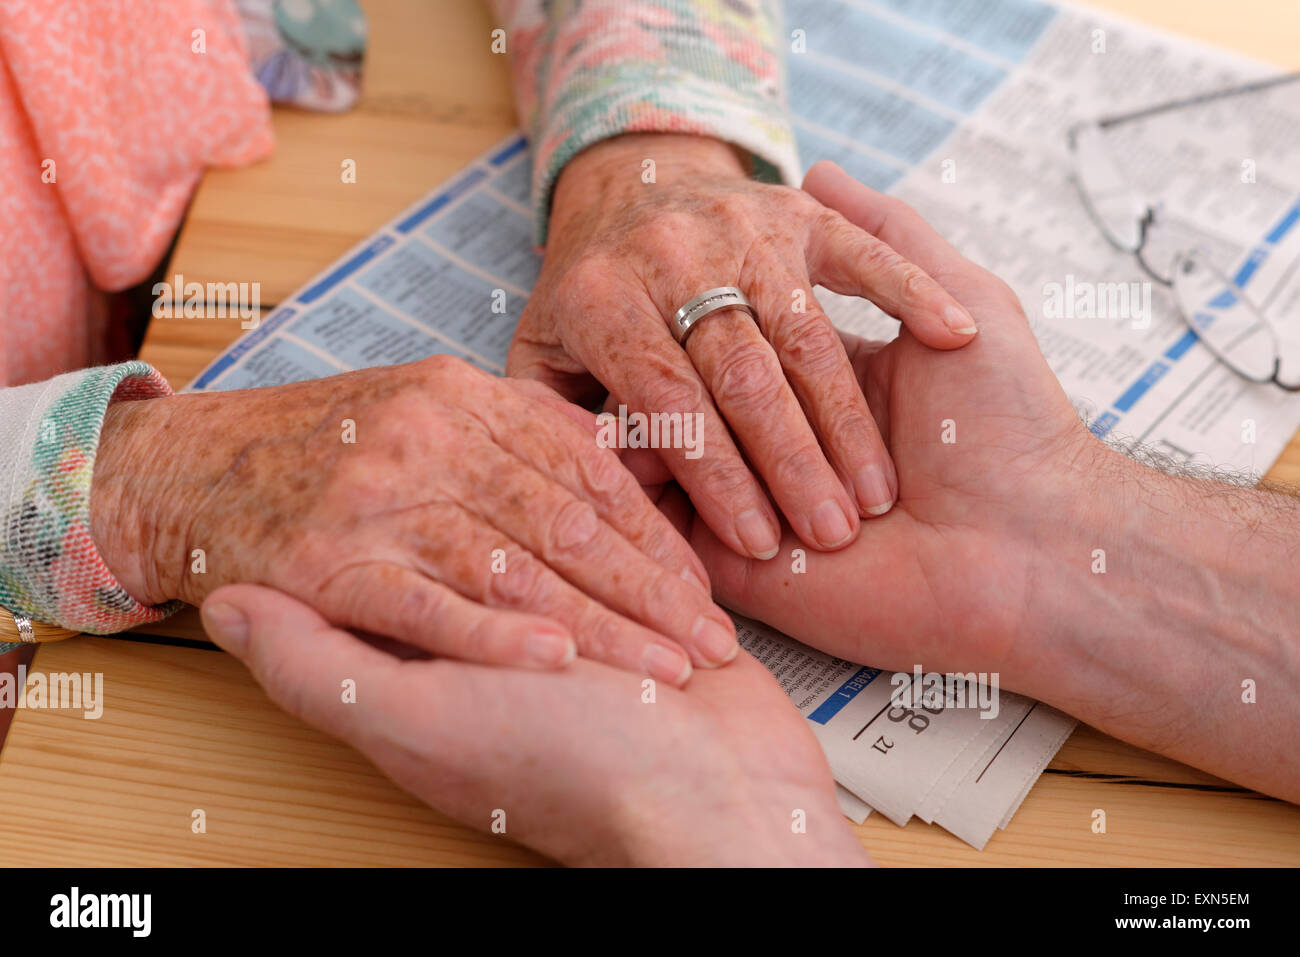 Hands of senior woman holding man's hands - Stock Image